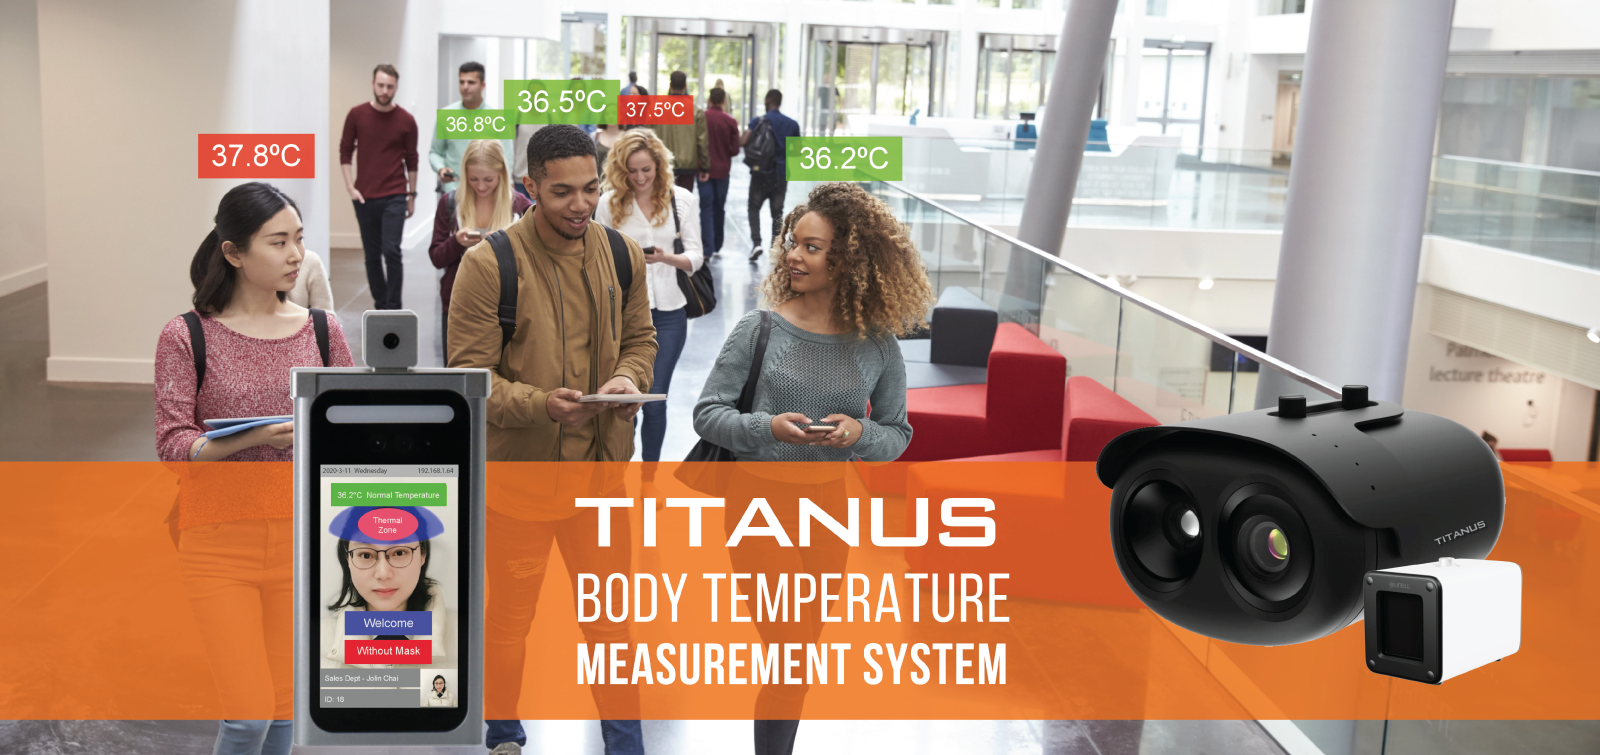 TITANUS Body Temperature Measurement System